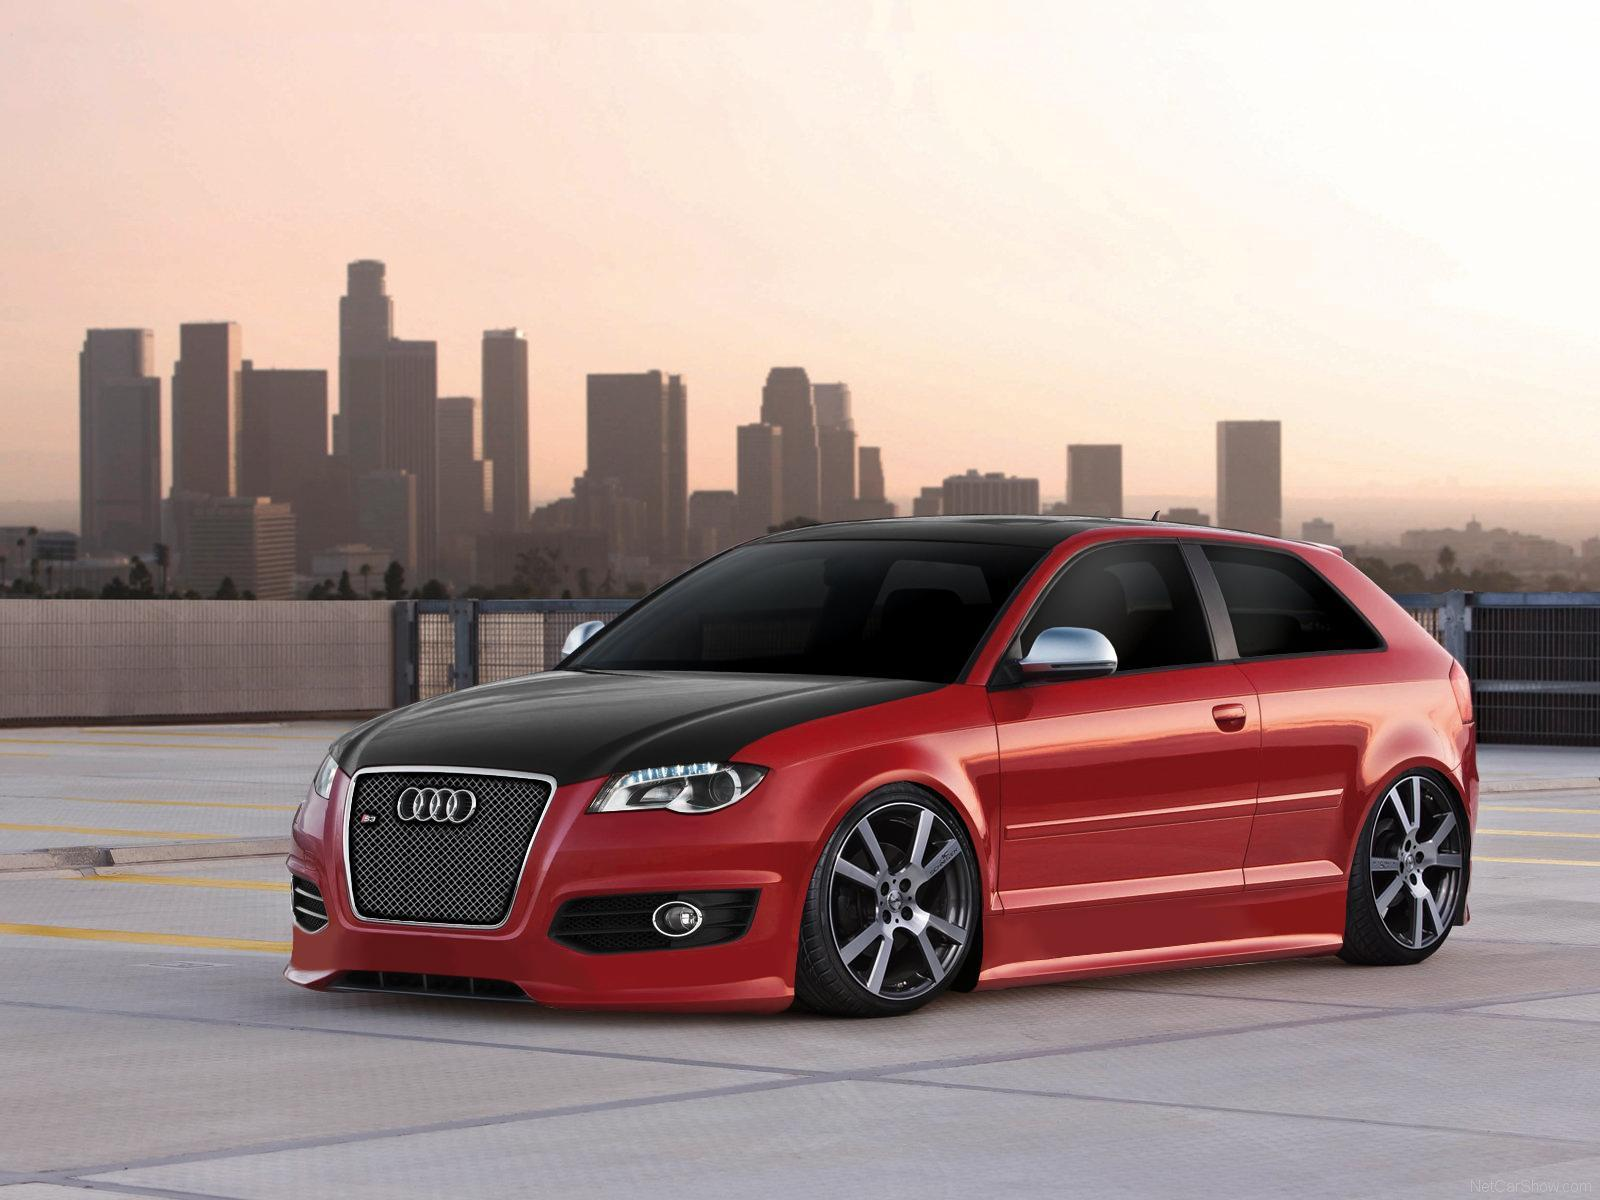 audi images audi s3 tuning hd wallpaper and background photos 15797988. Black Bedroom Furniture Sets. Home Design Ideas